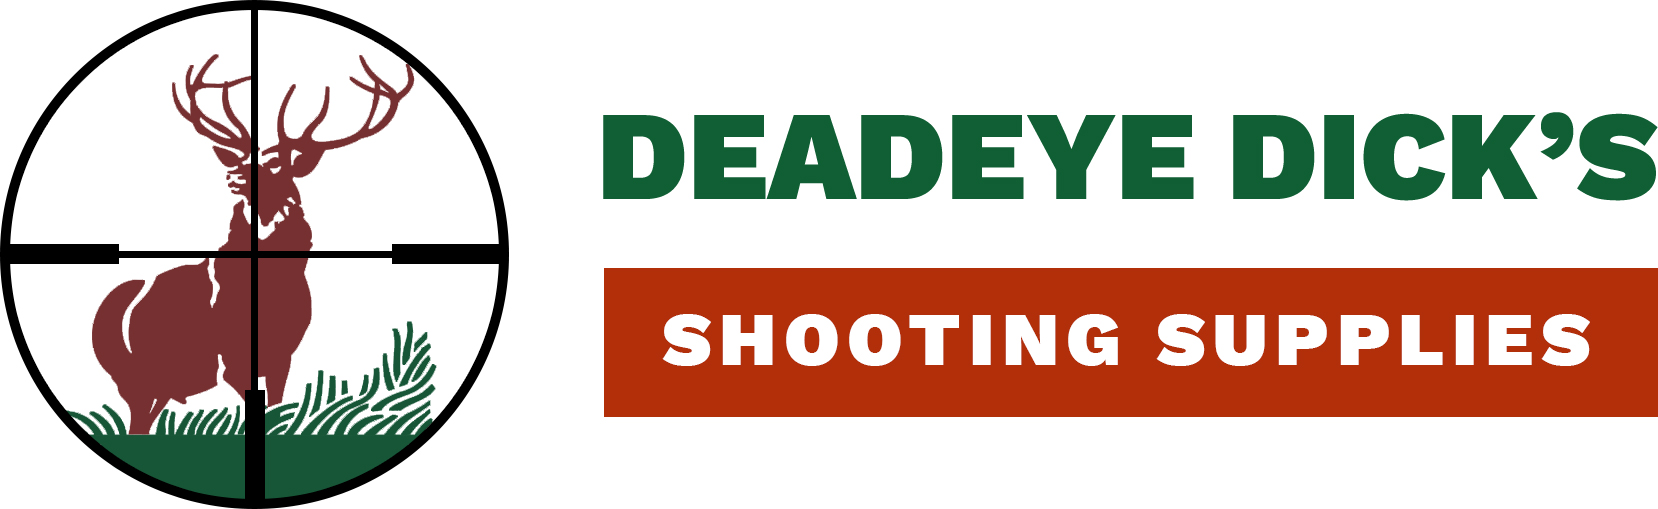 Deadeye Dicks Shooting Supplies